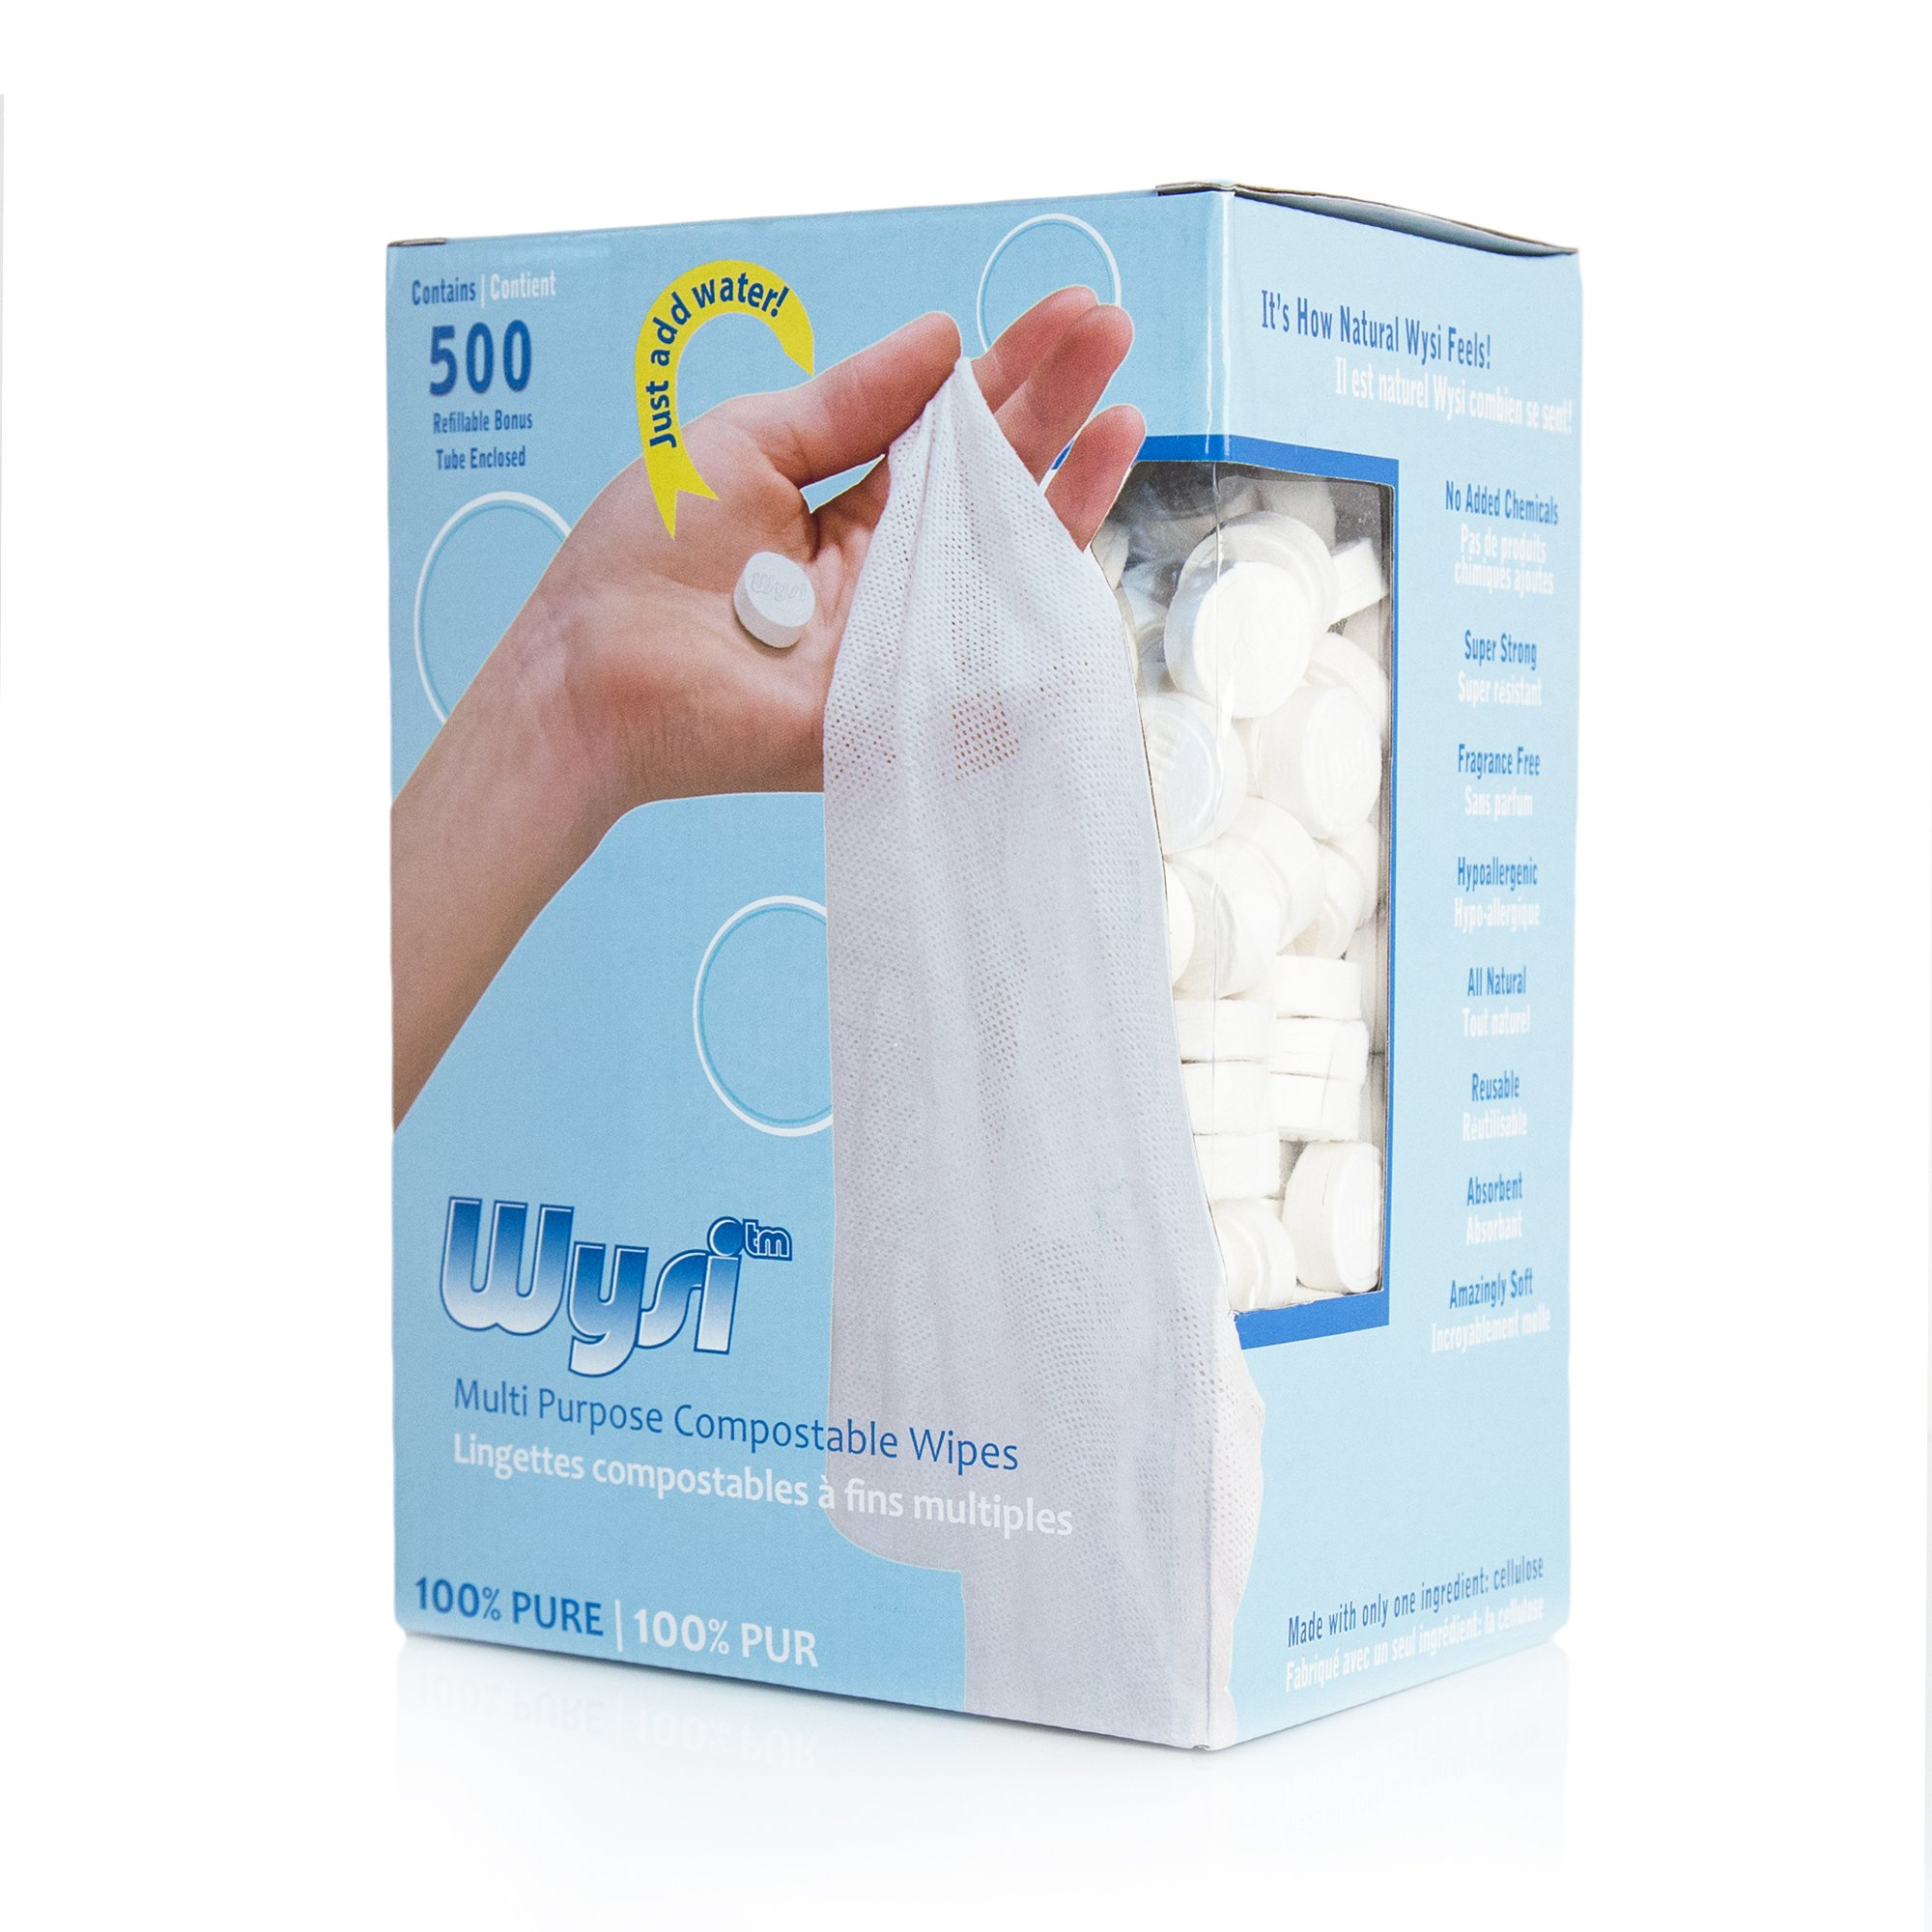 Wysi Wipe – All Natural Multi-Purpose Biodegradable Wipes, Soft, Strong and Reusable, Just Add Water – 500 Wipes and Travel Tube